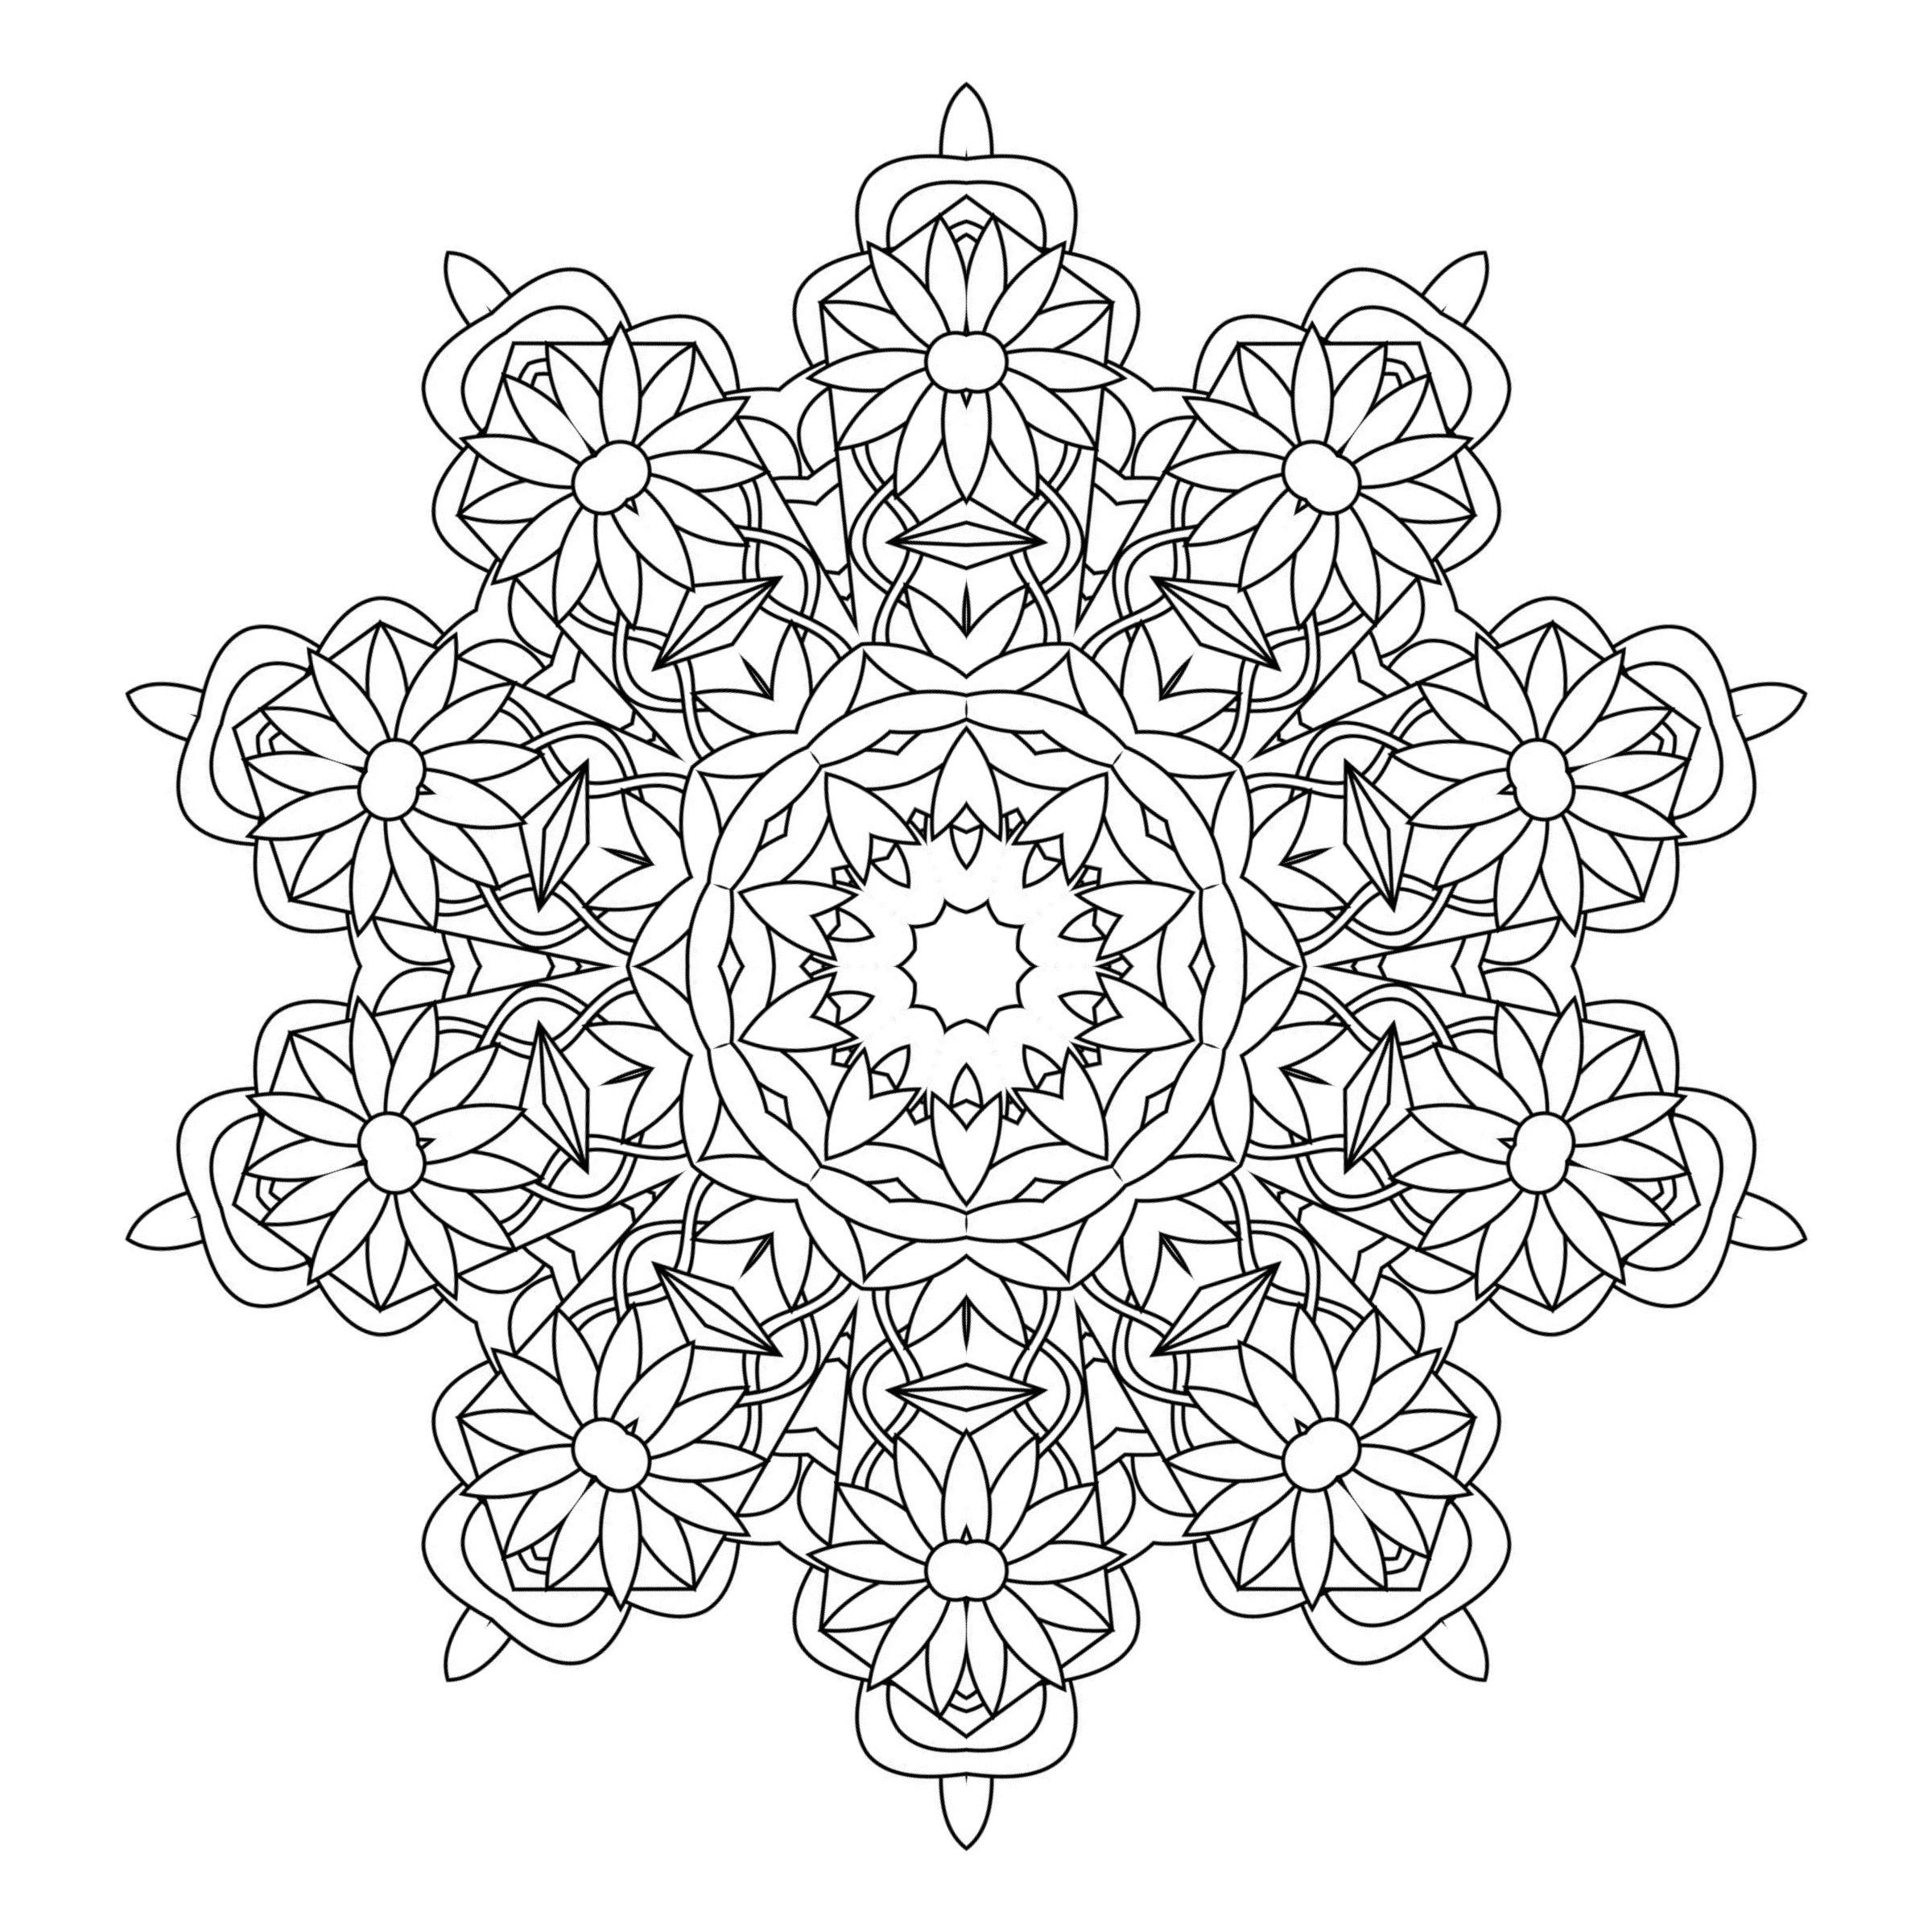 adult coloring pages colored - kaleidoscope coloring pages for adults